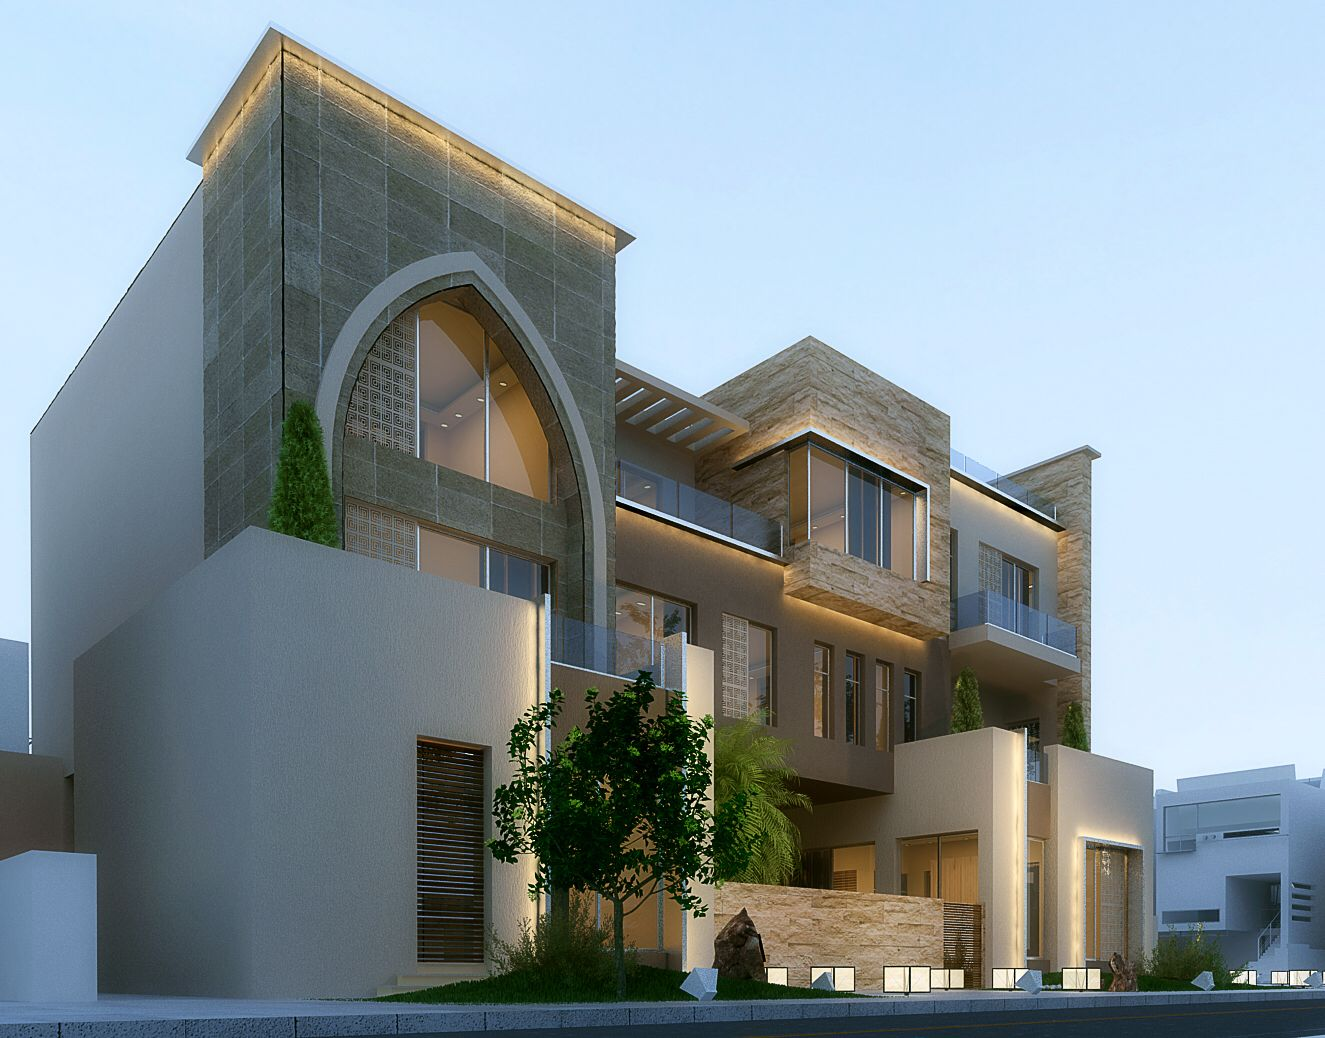 Modern villa in kuwait . Using 3ds max , vray and photoshop ... on south asia houses design, malaysia houses design, oman houses design, liberia houses design, cayman islands houses design, thailand houses design, italy houses design, pakistan houses design, india houses design, uganda houses design, korea houses design, philippines houses design, taiwan houses design, syria houses design, israel houses design, mexico houses design, dubai houses design,